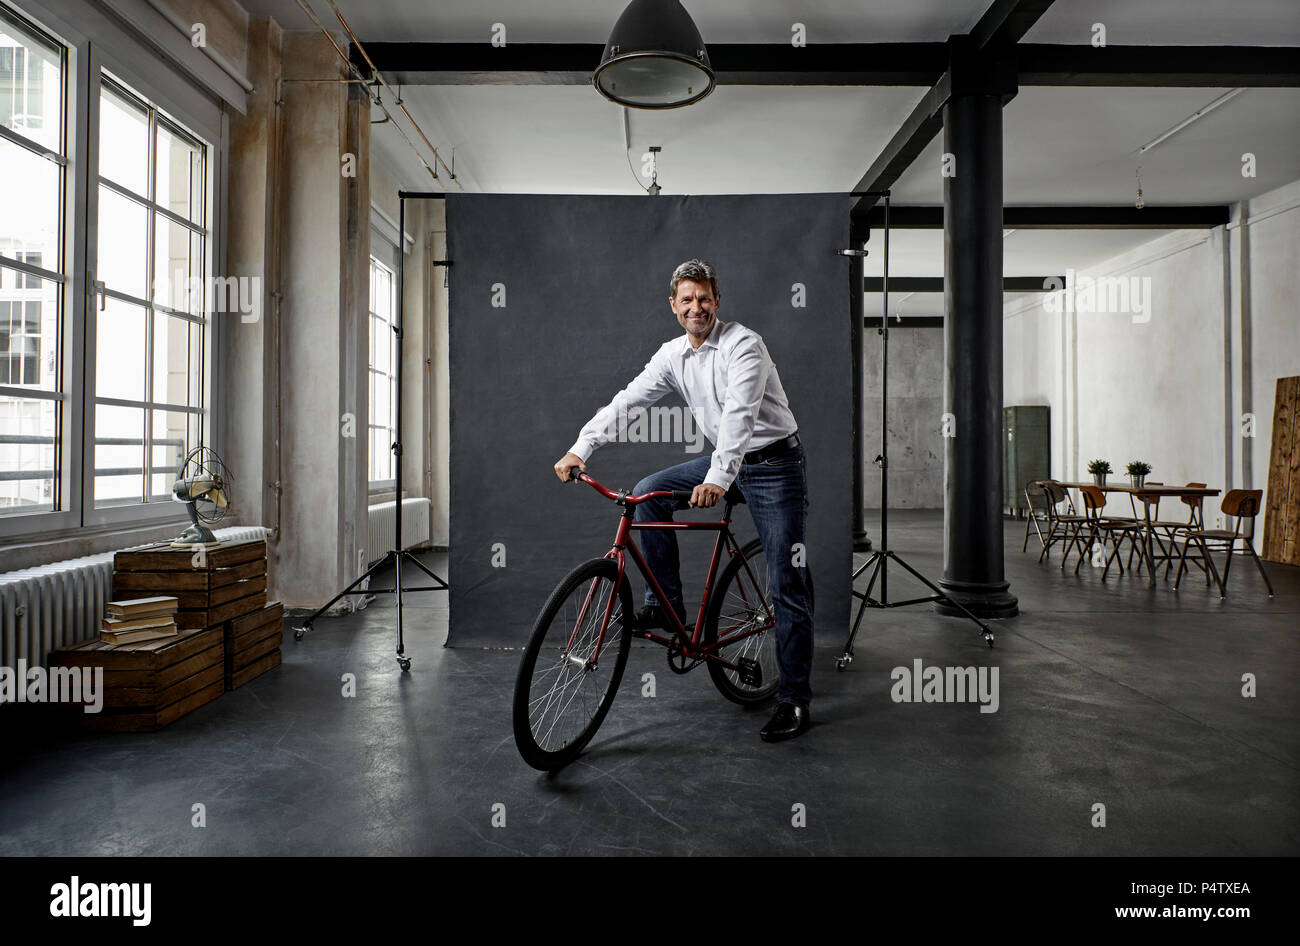 Portrait of mature businessman on fixie bike in front of black backdrop in loft - Stock Image